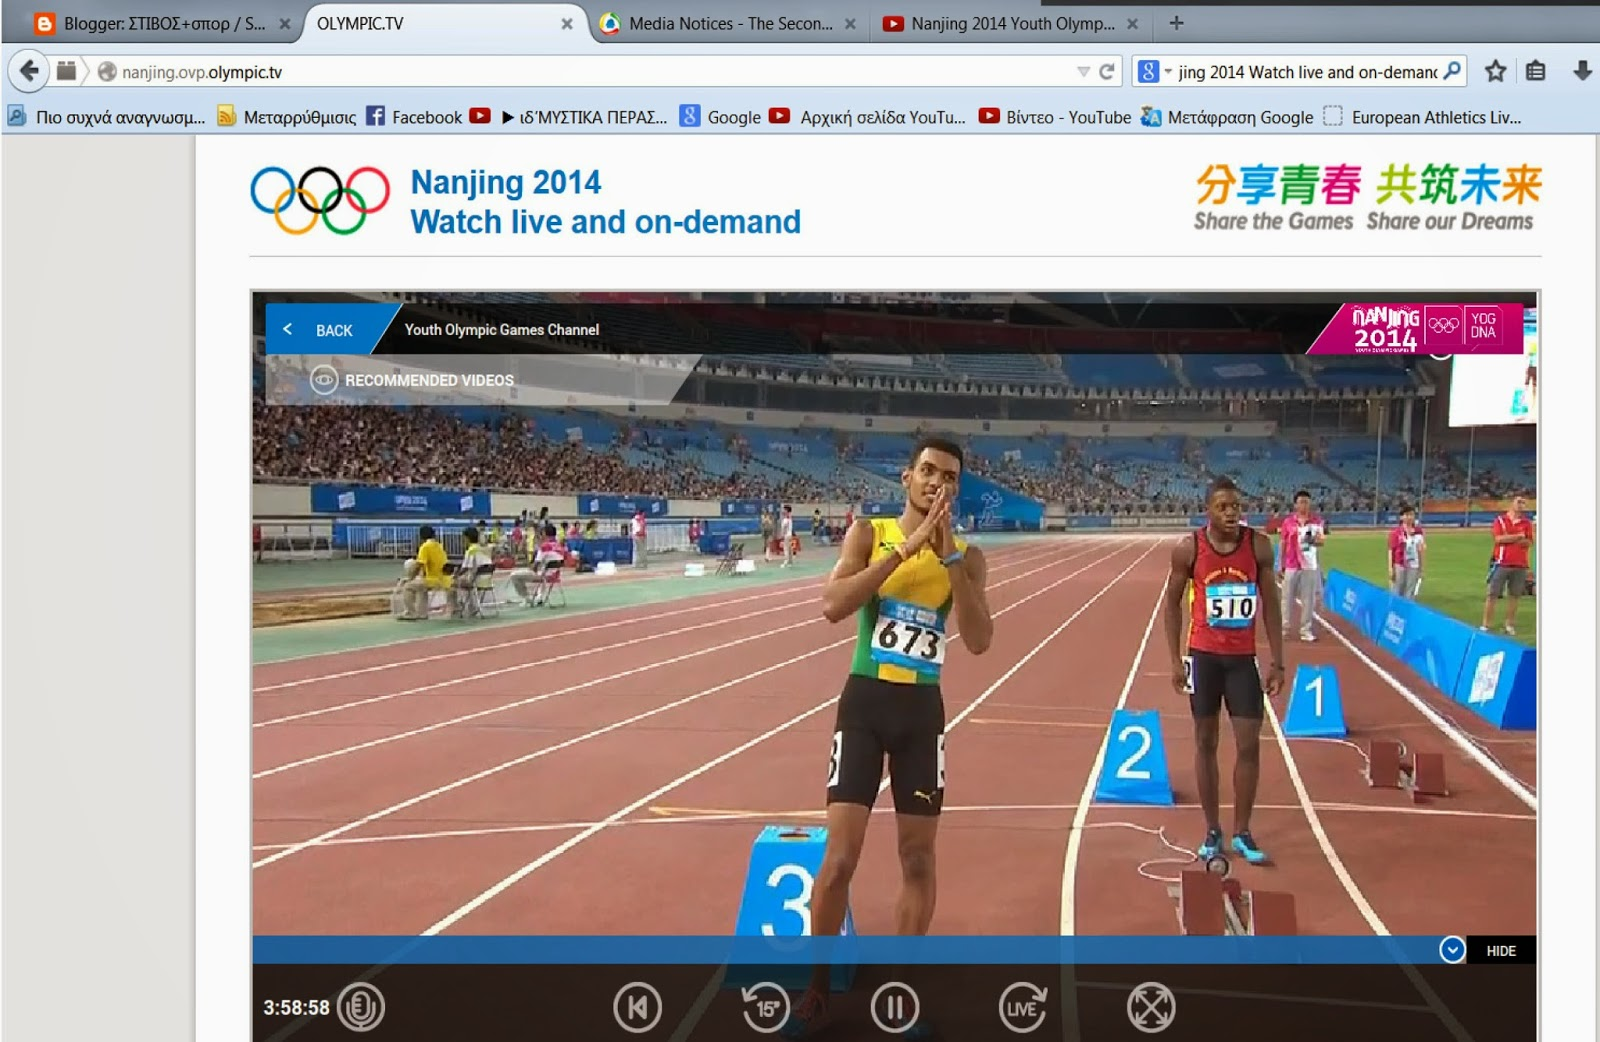 http://nanjing.ovp.olympic.tv/